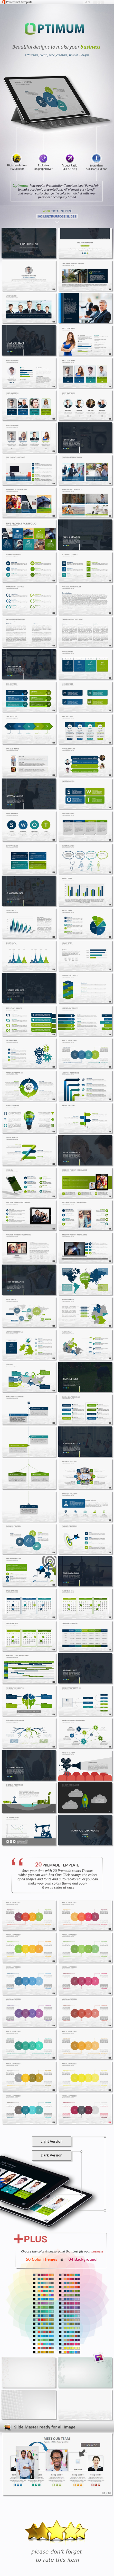 Optimum Powerpoint Presentation Template - Business PowerPoint Templates